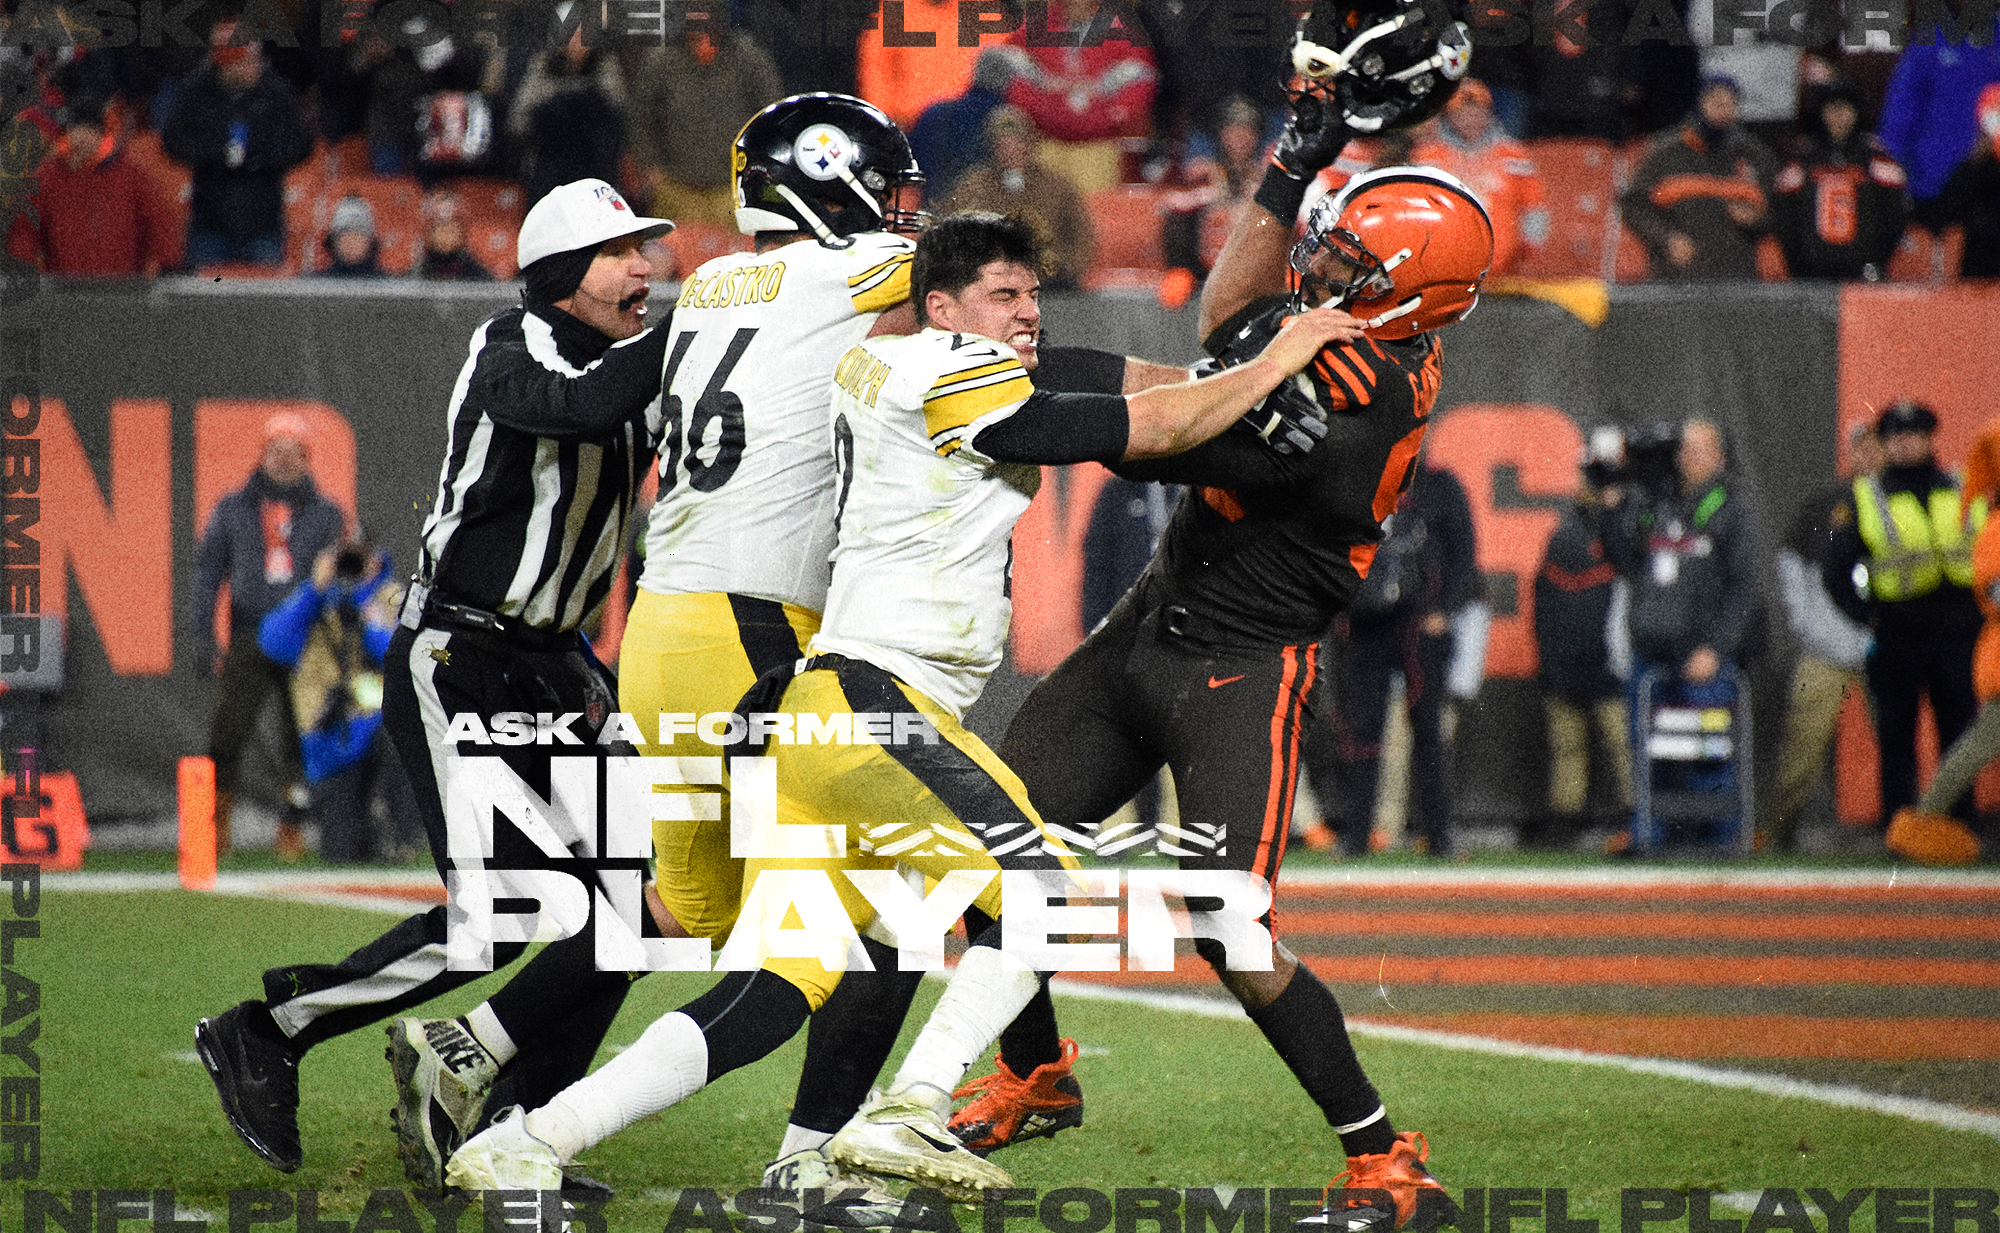 Browns DE Myles Garrett swings a helmet at Steelers QB Mason Rudolph, with OL David DeCastro and a ref trying to break it up